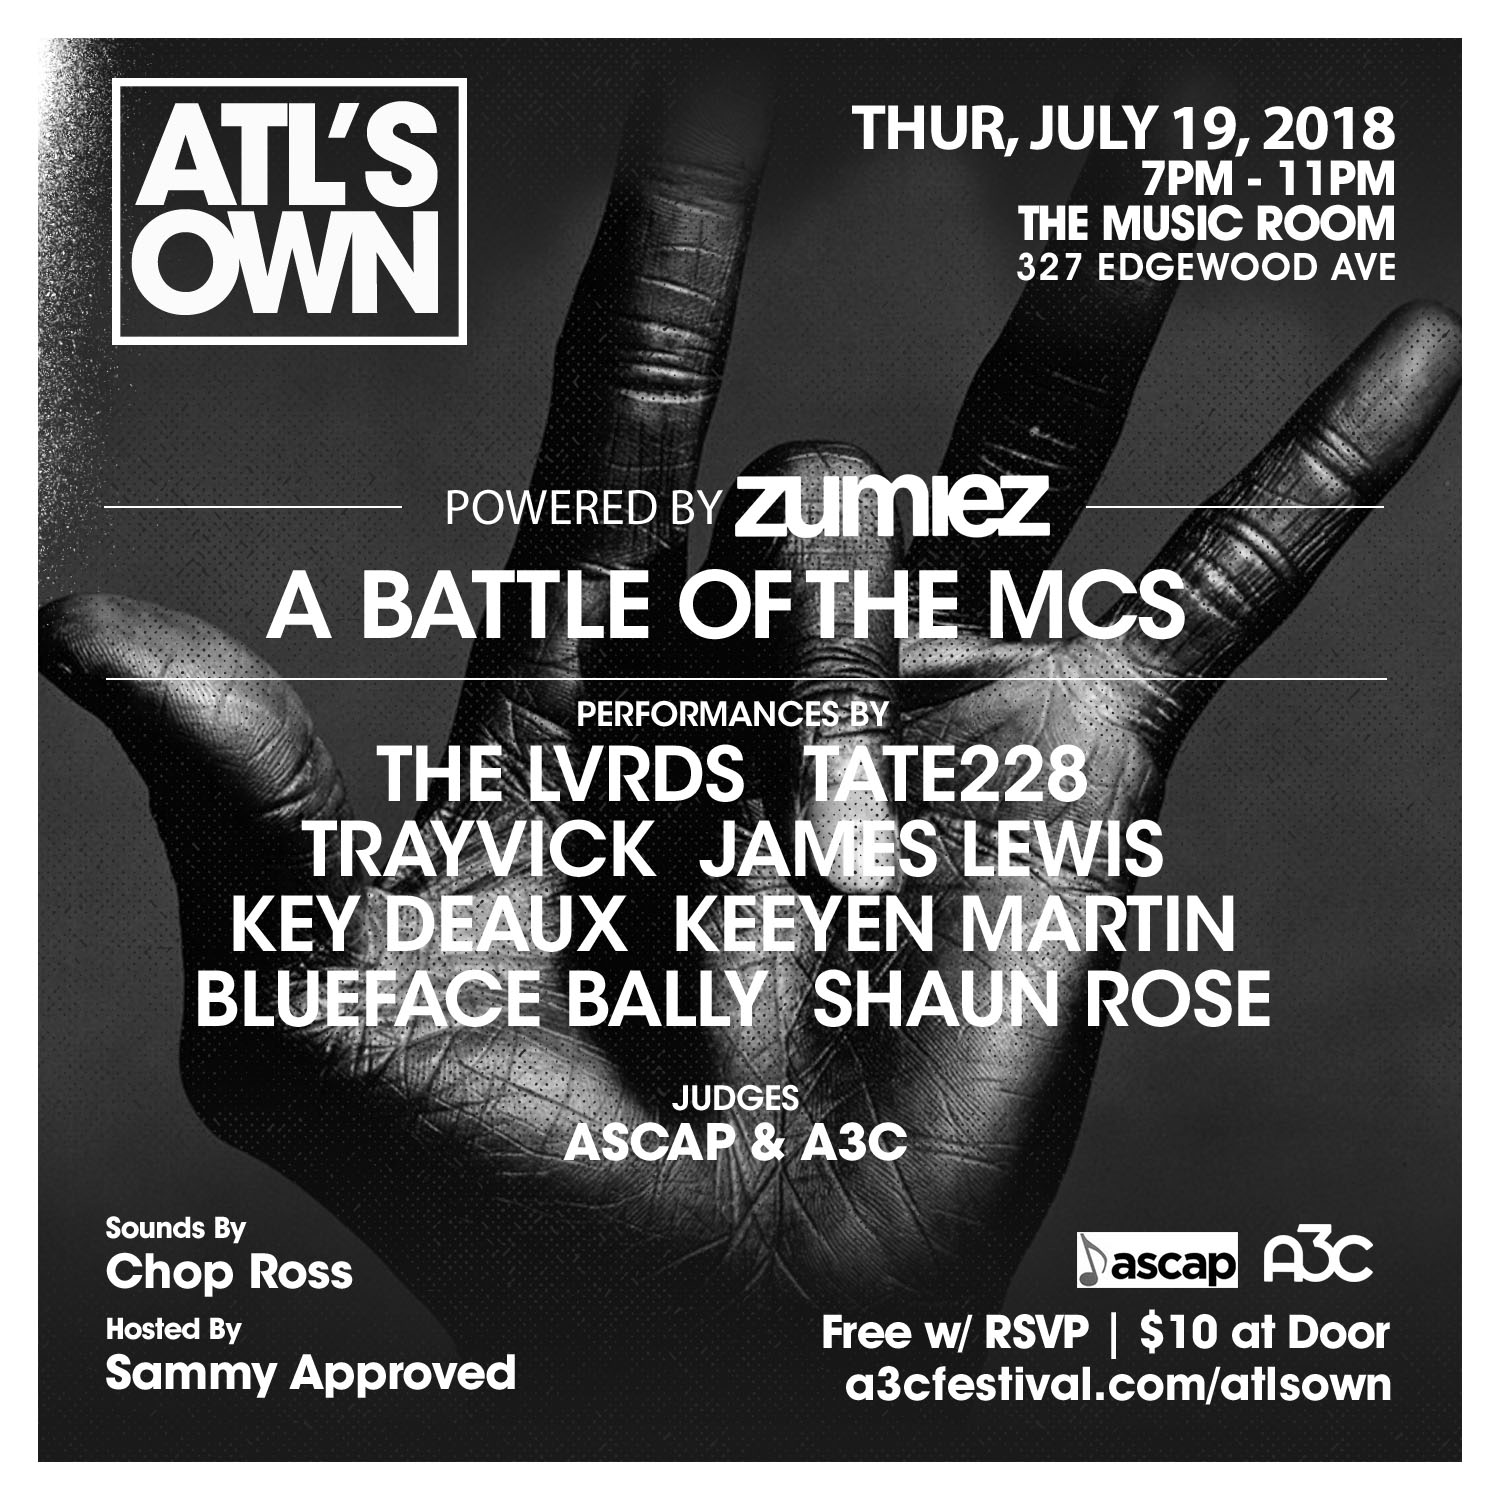 Battle of the MCs - ATLs Own (1)